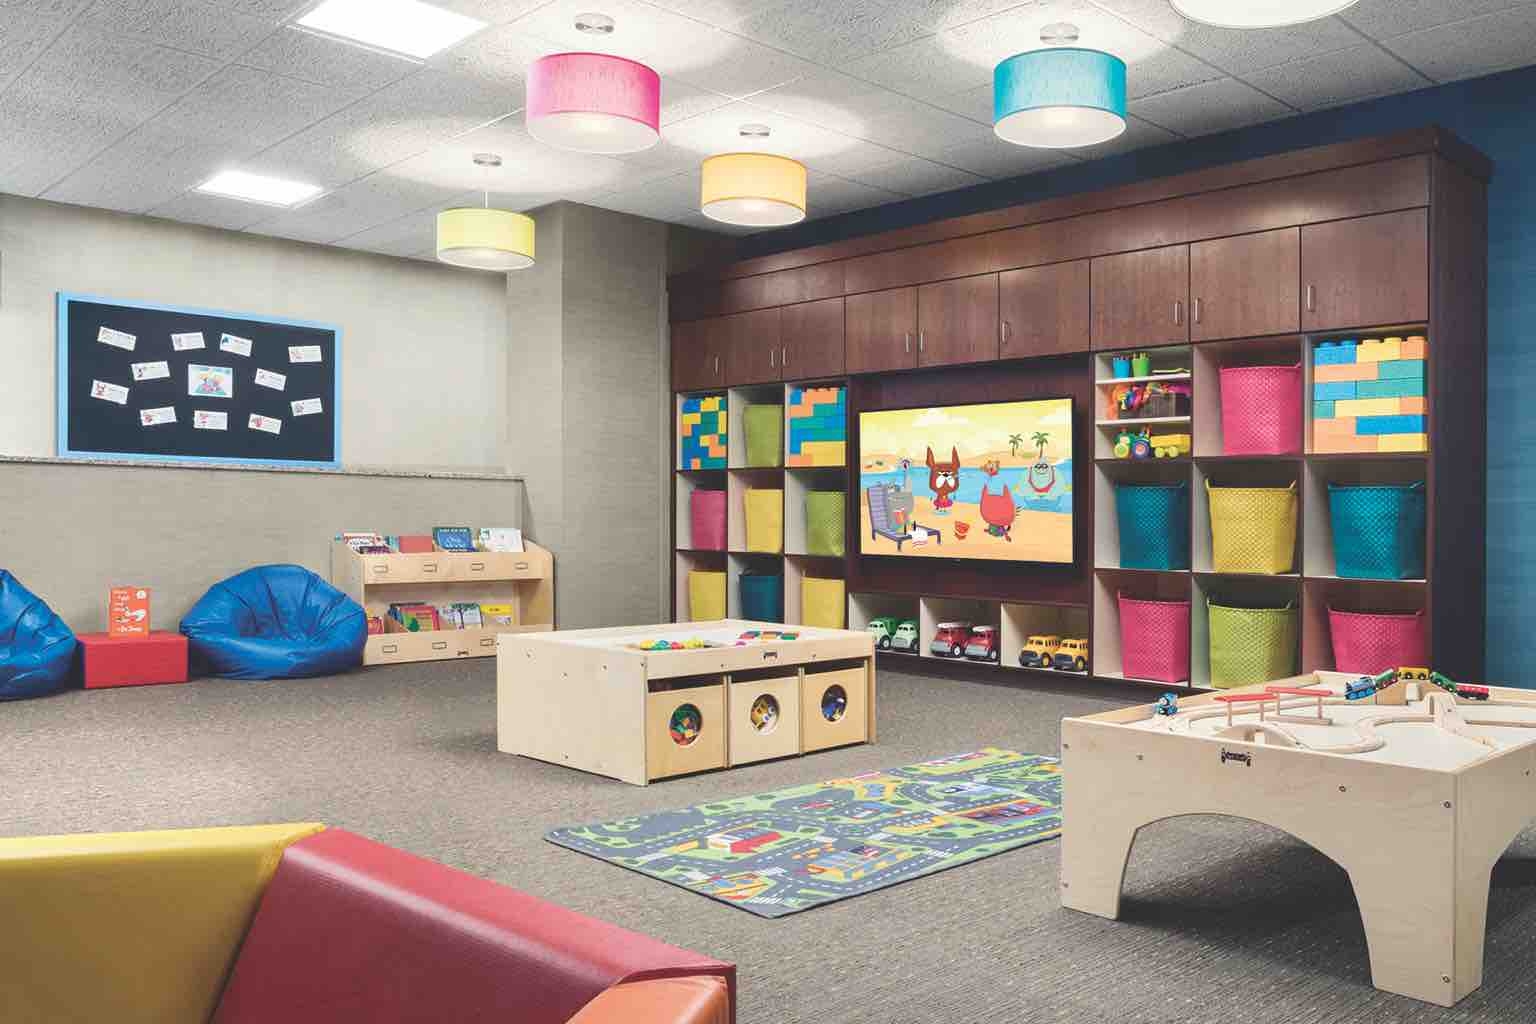 A child center with a large screen, bulletin board, colorful cubbies, activity tables and beanbag chairs